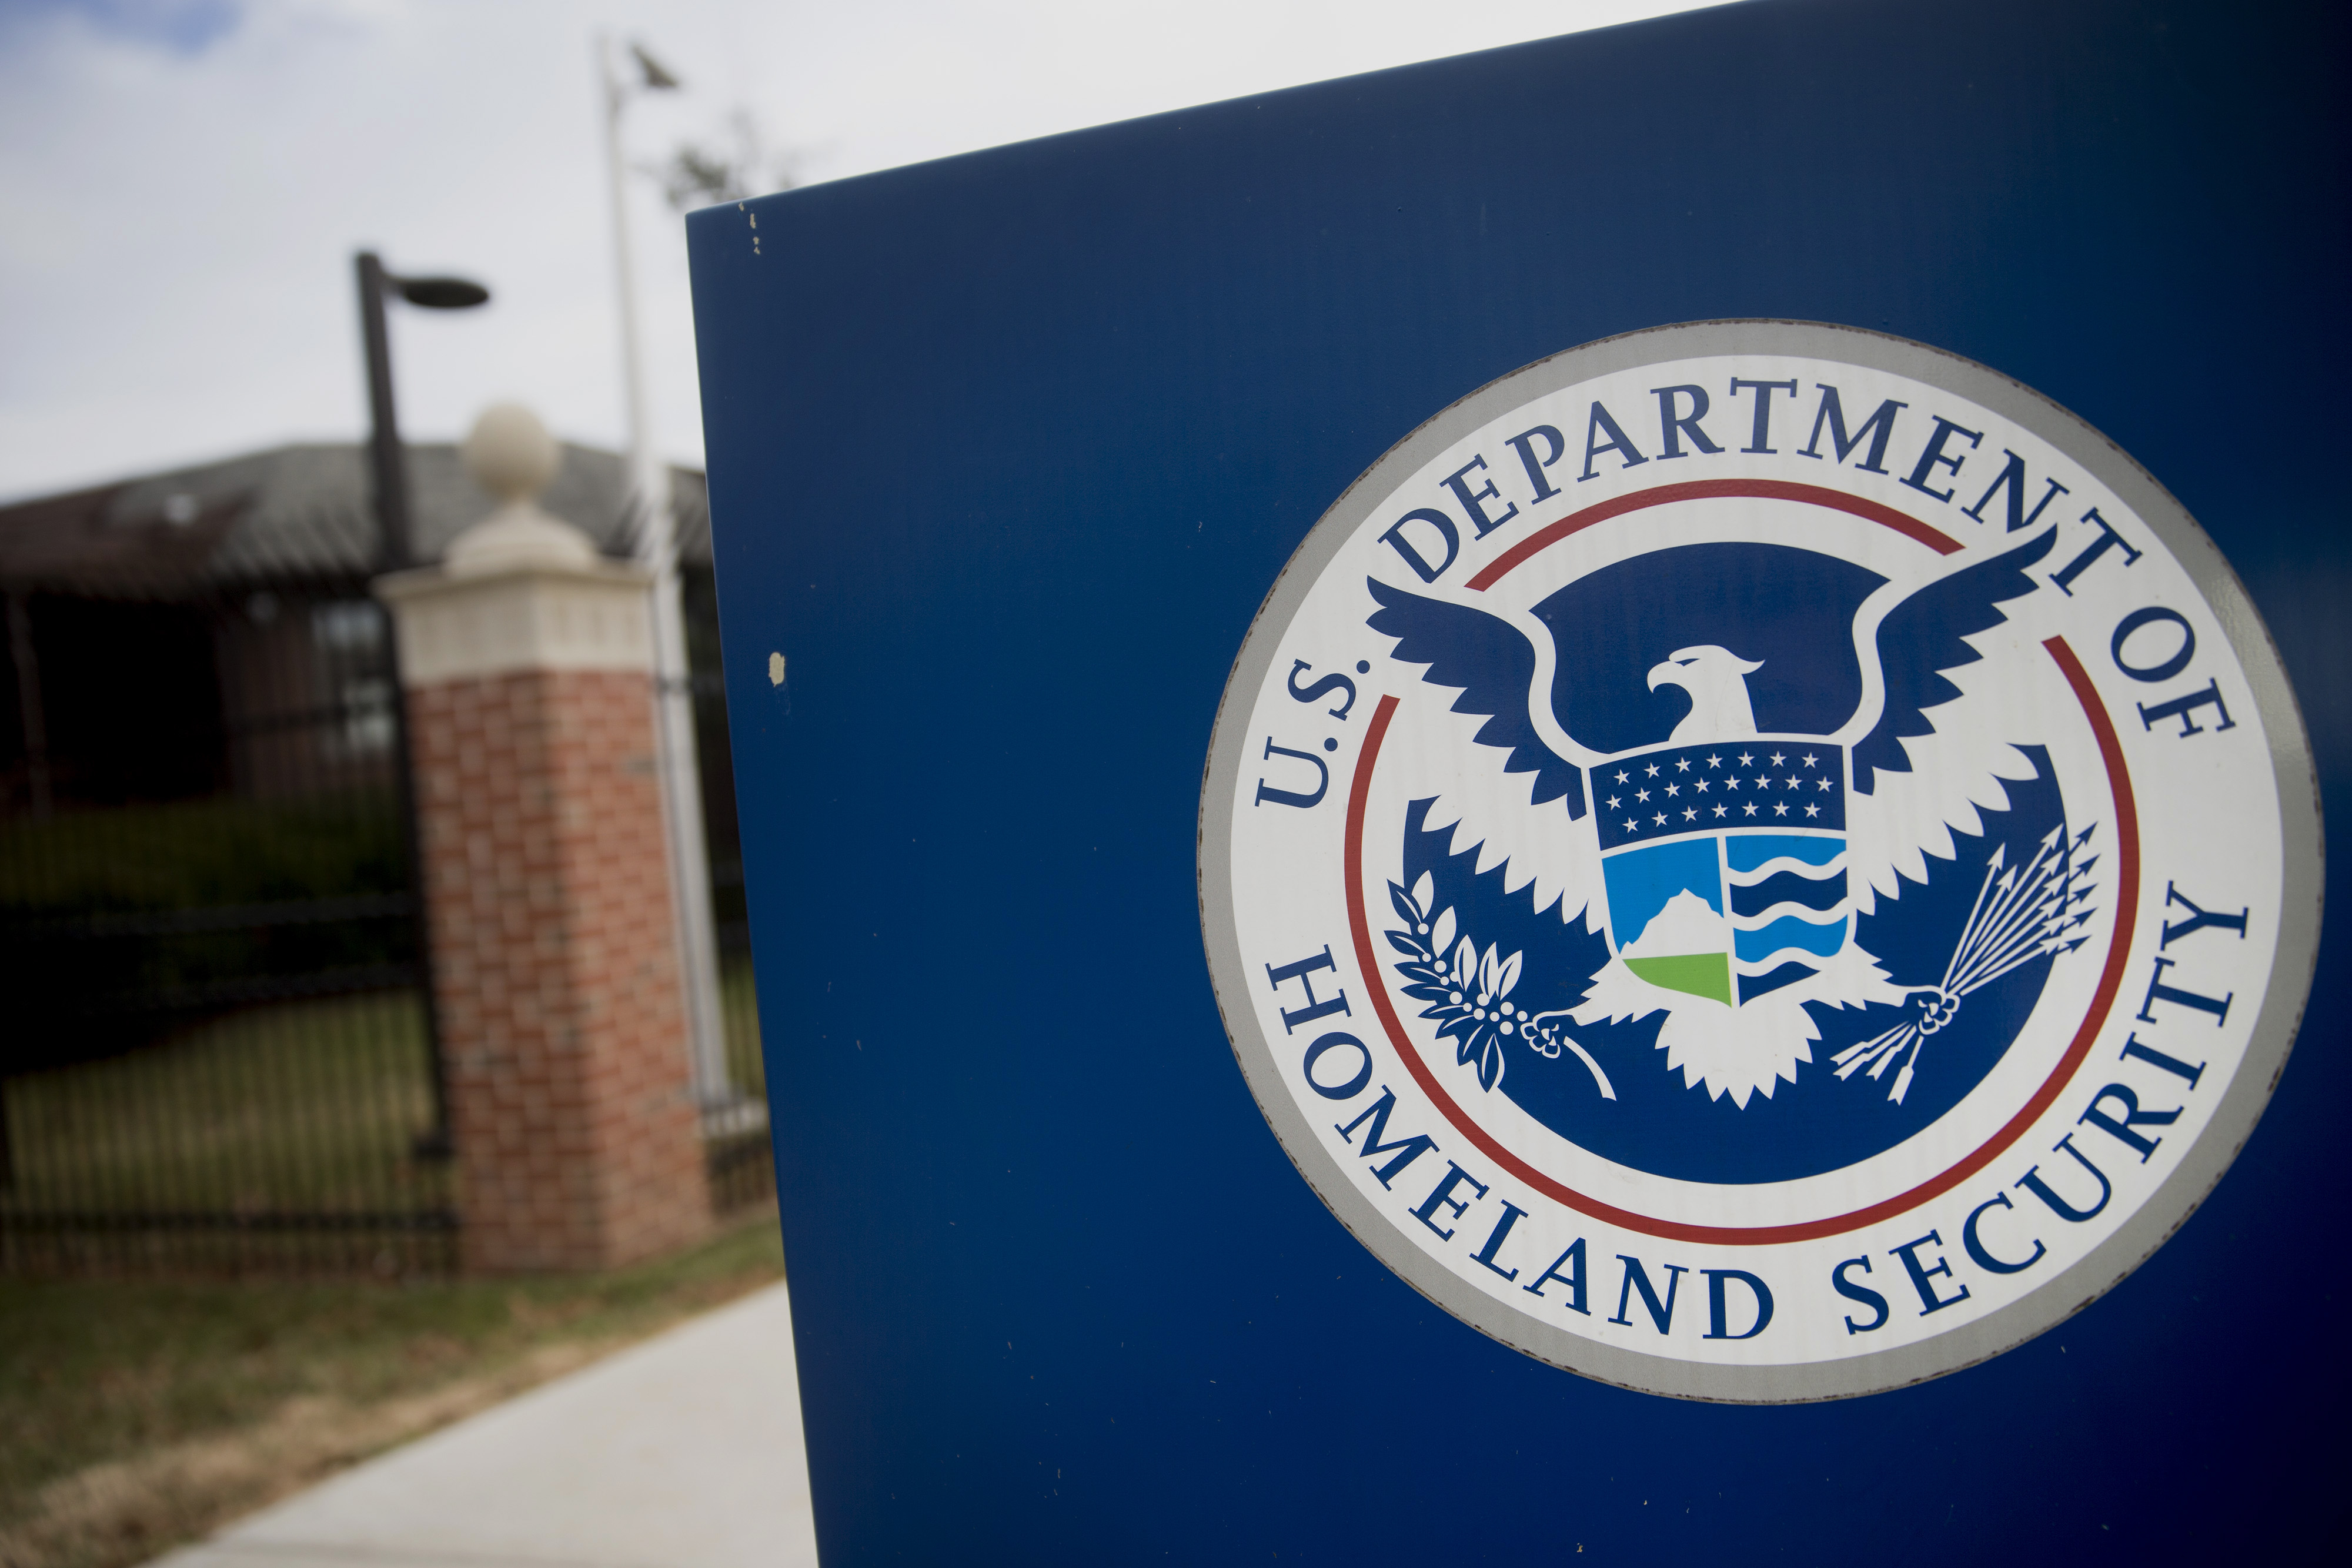 The U.S. Department of Homeland Security (DHS) seal stands at the agency's headquarters in Washington, D.C., U.S., on Thursday, Dec. 11, 2014. The U.S. House is set to pass a $1.1 trillion spending bill that includes a banking provision opposed by many Democrats as a giveaway to large institutions. Current funding for the government ends today, and the measure would finance most of the government through September 2015. The DHS, responsible for immigration policy, would be financed only through Feb. 27. Photographer: Andrew Harrer/Bloomberg via Getty Images